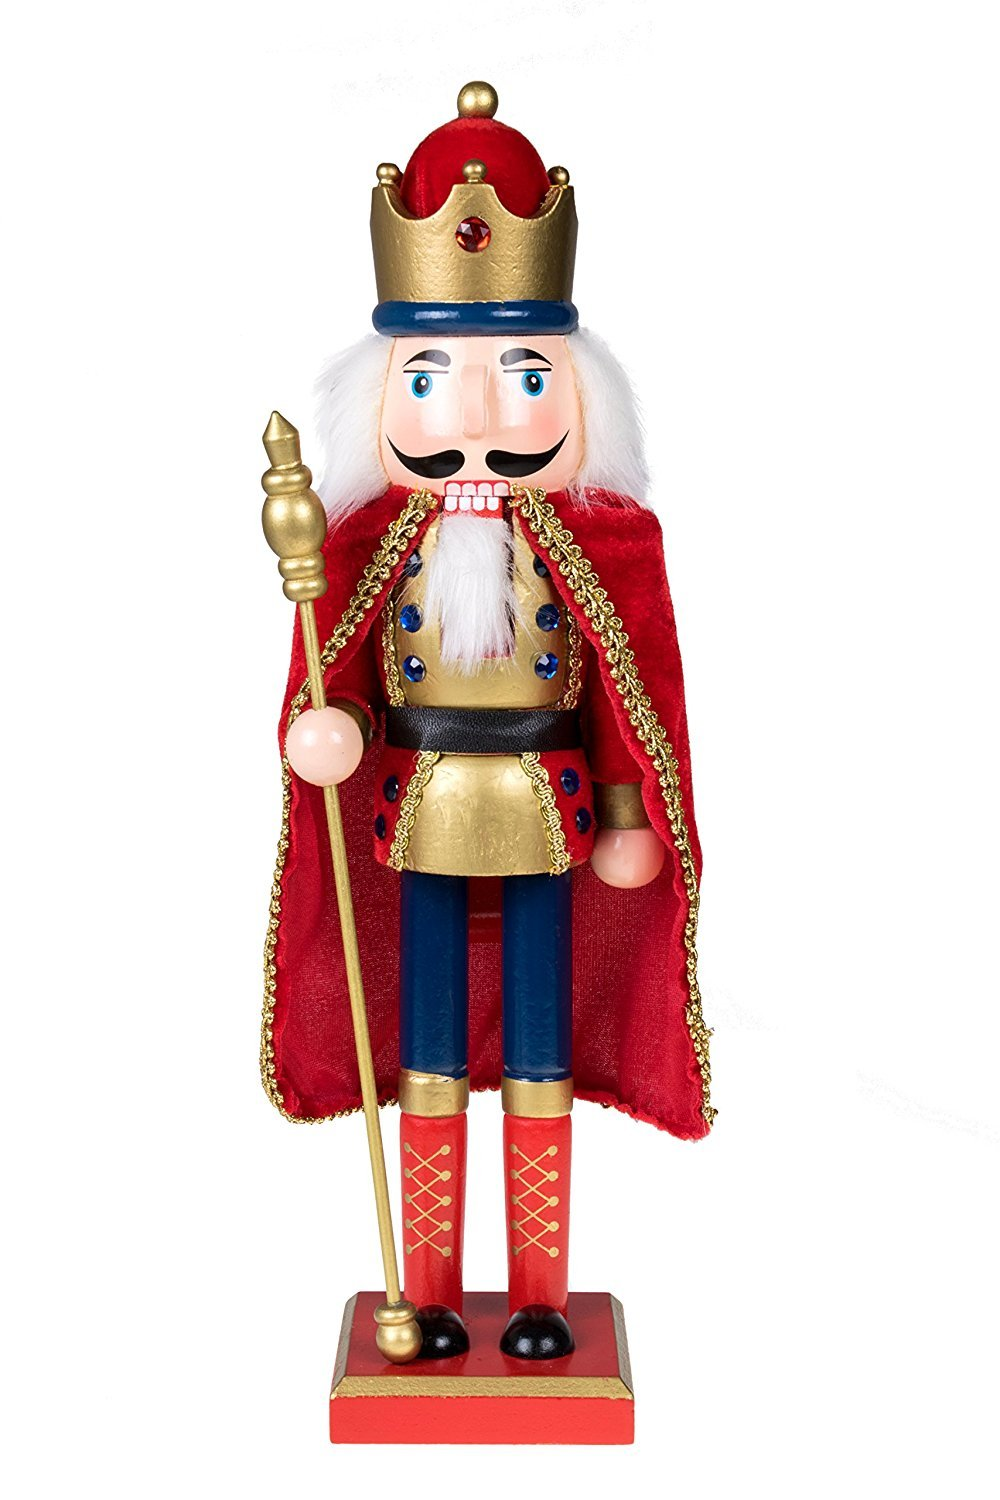 Traditional King Nutcracker by Clever Creations | Gold and Red Uniform | Jeweled Crown | Holding Gold Scepter | Collectible Wooden Christmas Nutcracker | Festive Holiday Decor | 100% Wood | 15'' Tall